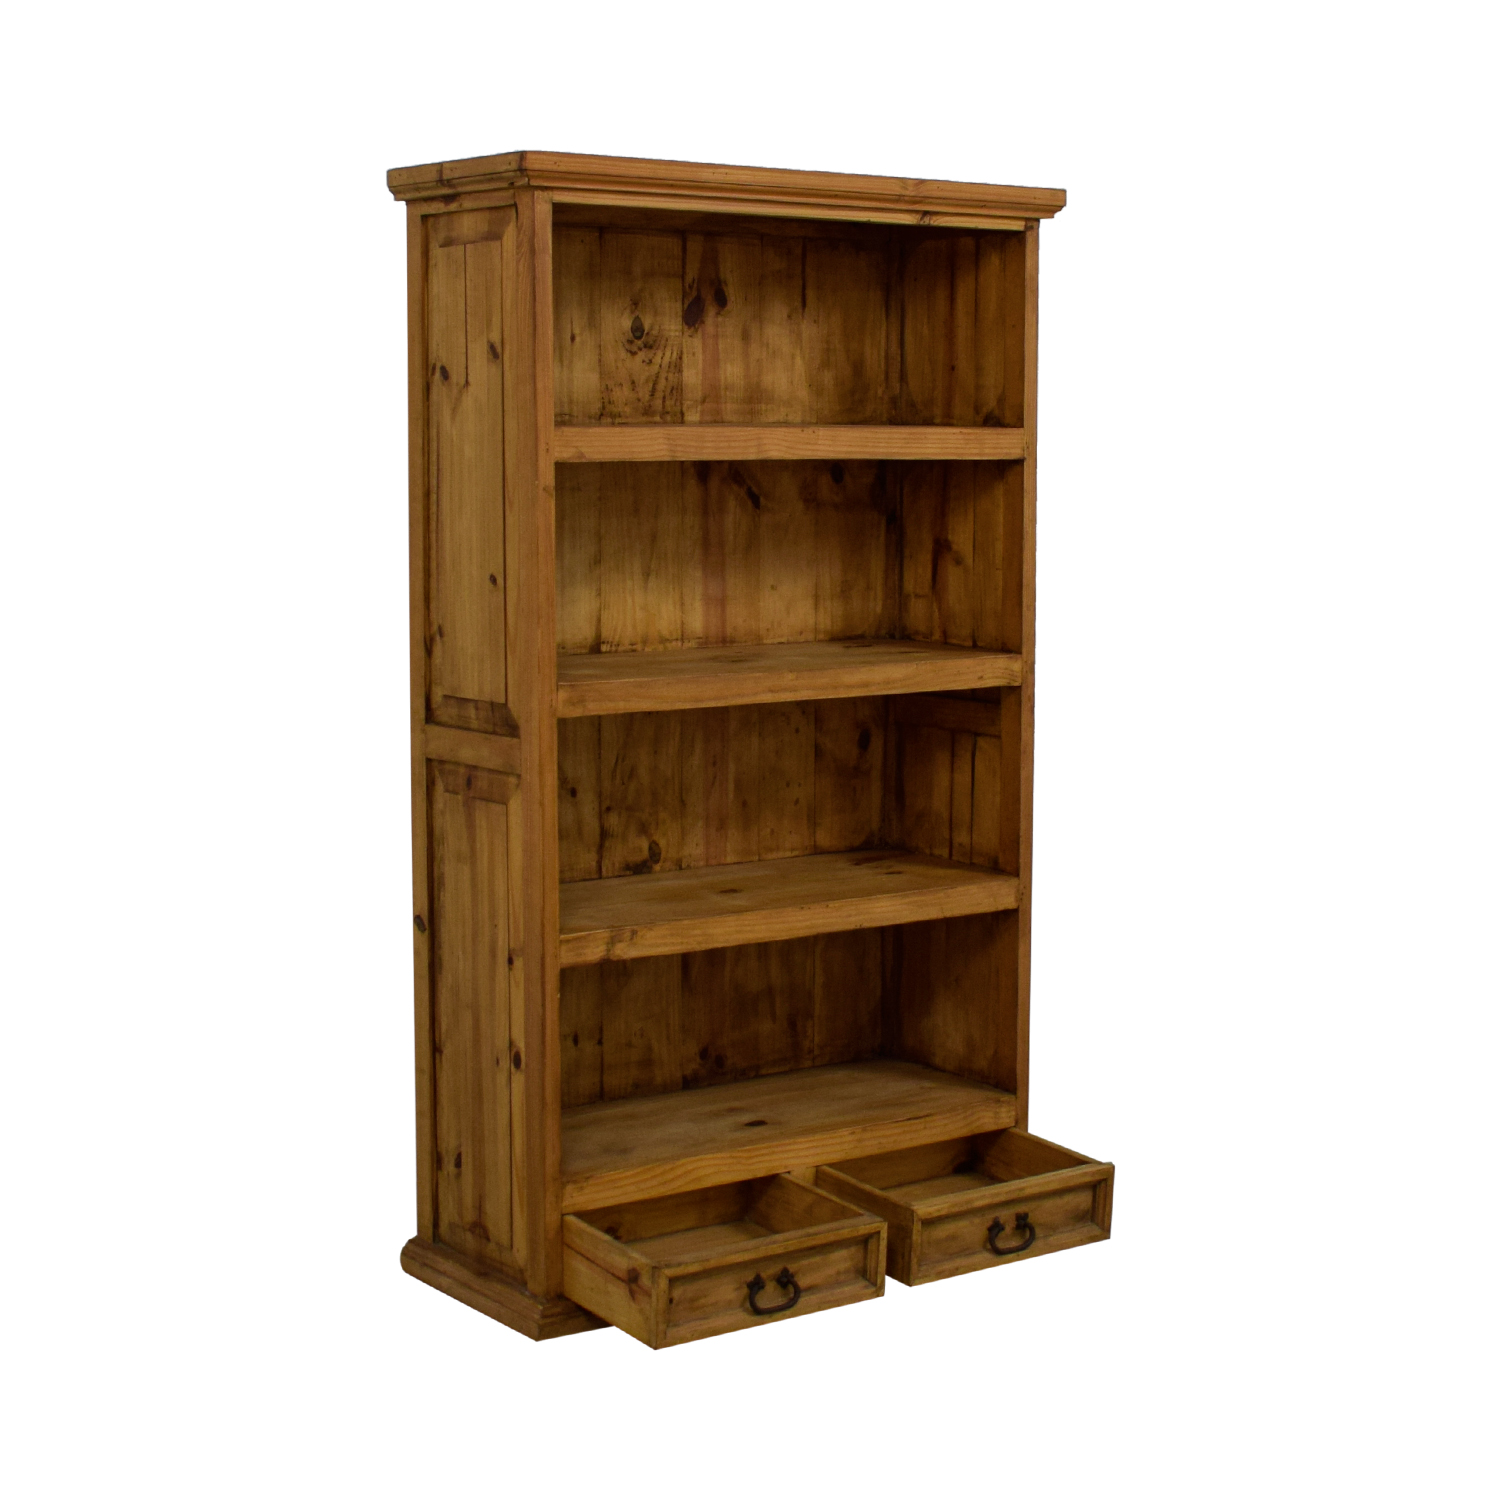 Natural Rustic Wood Bookshelf with Two-Drawers